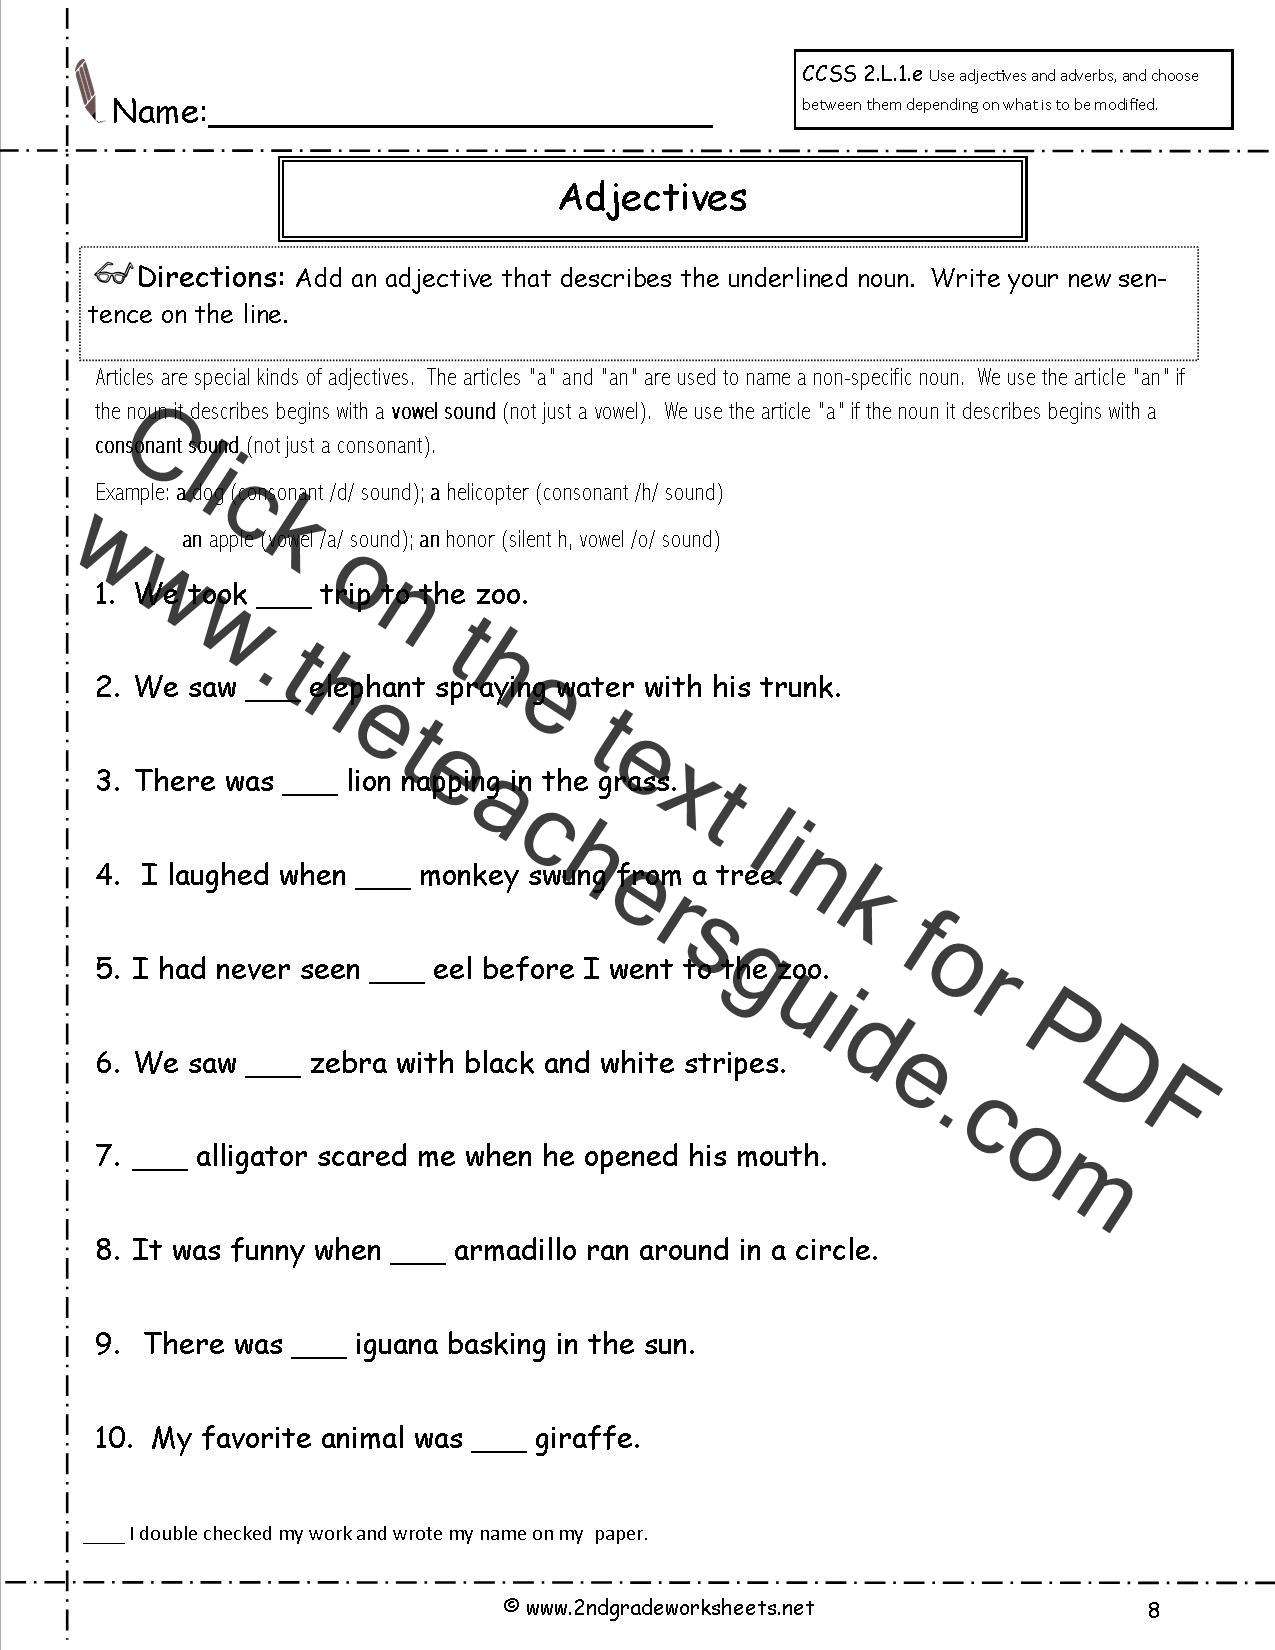 image regarding Printable Grammar Worksheets titled Absolutely free Language/Grammar Worksheets and Printouts